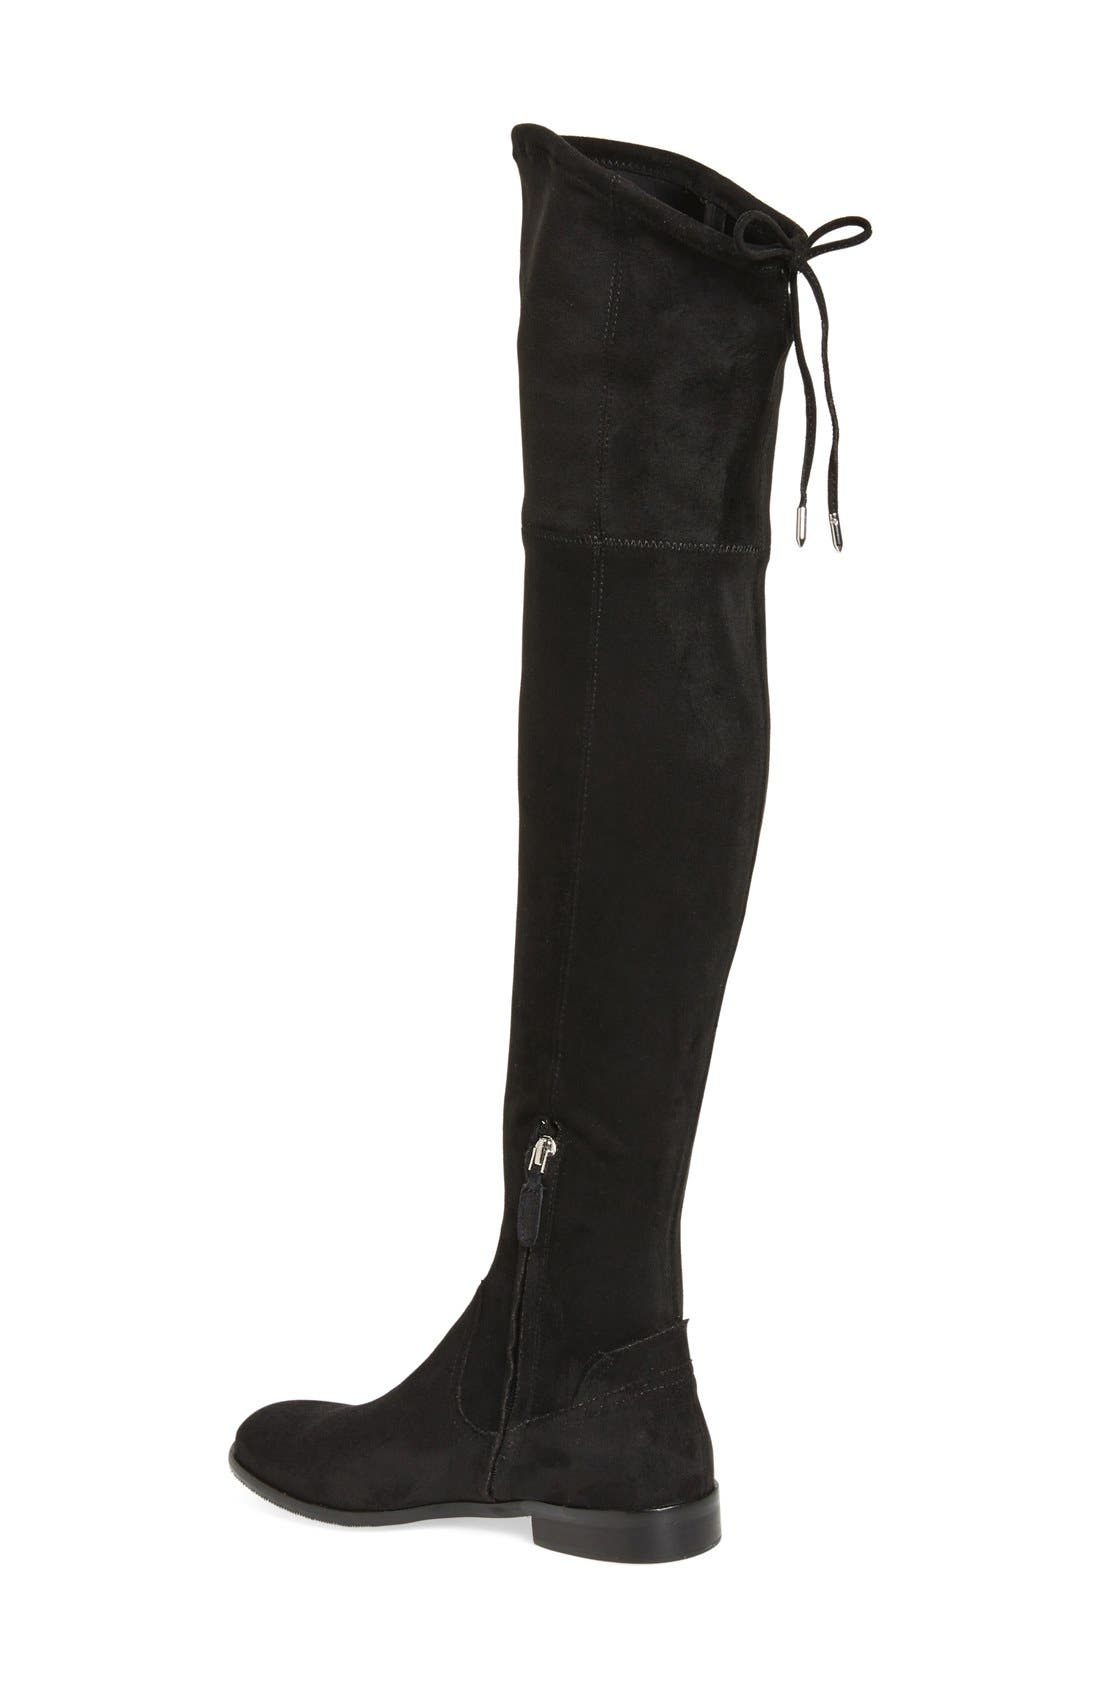 'Neely' Over the Knee Boot,                             Alternate thumbnail 3, color,                             001